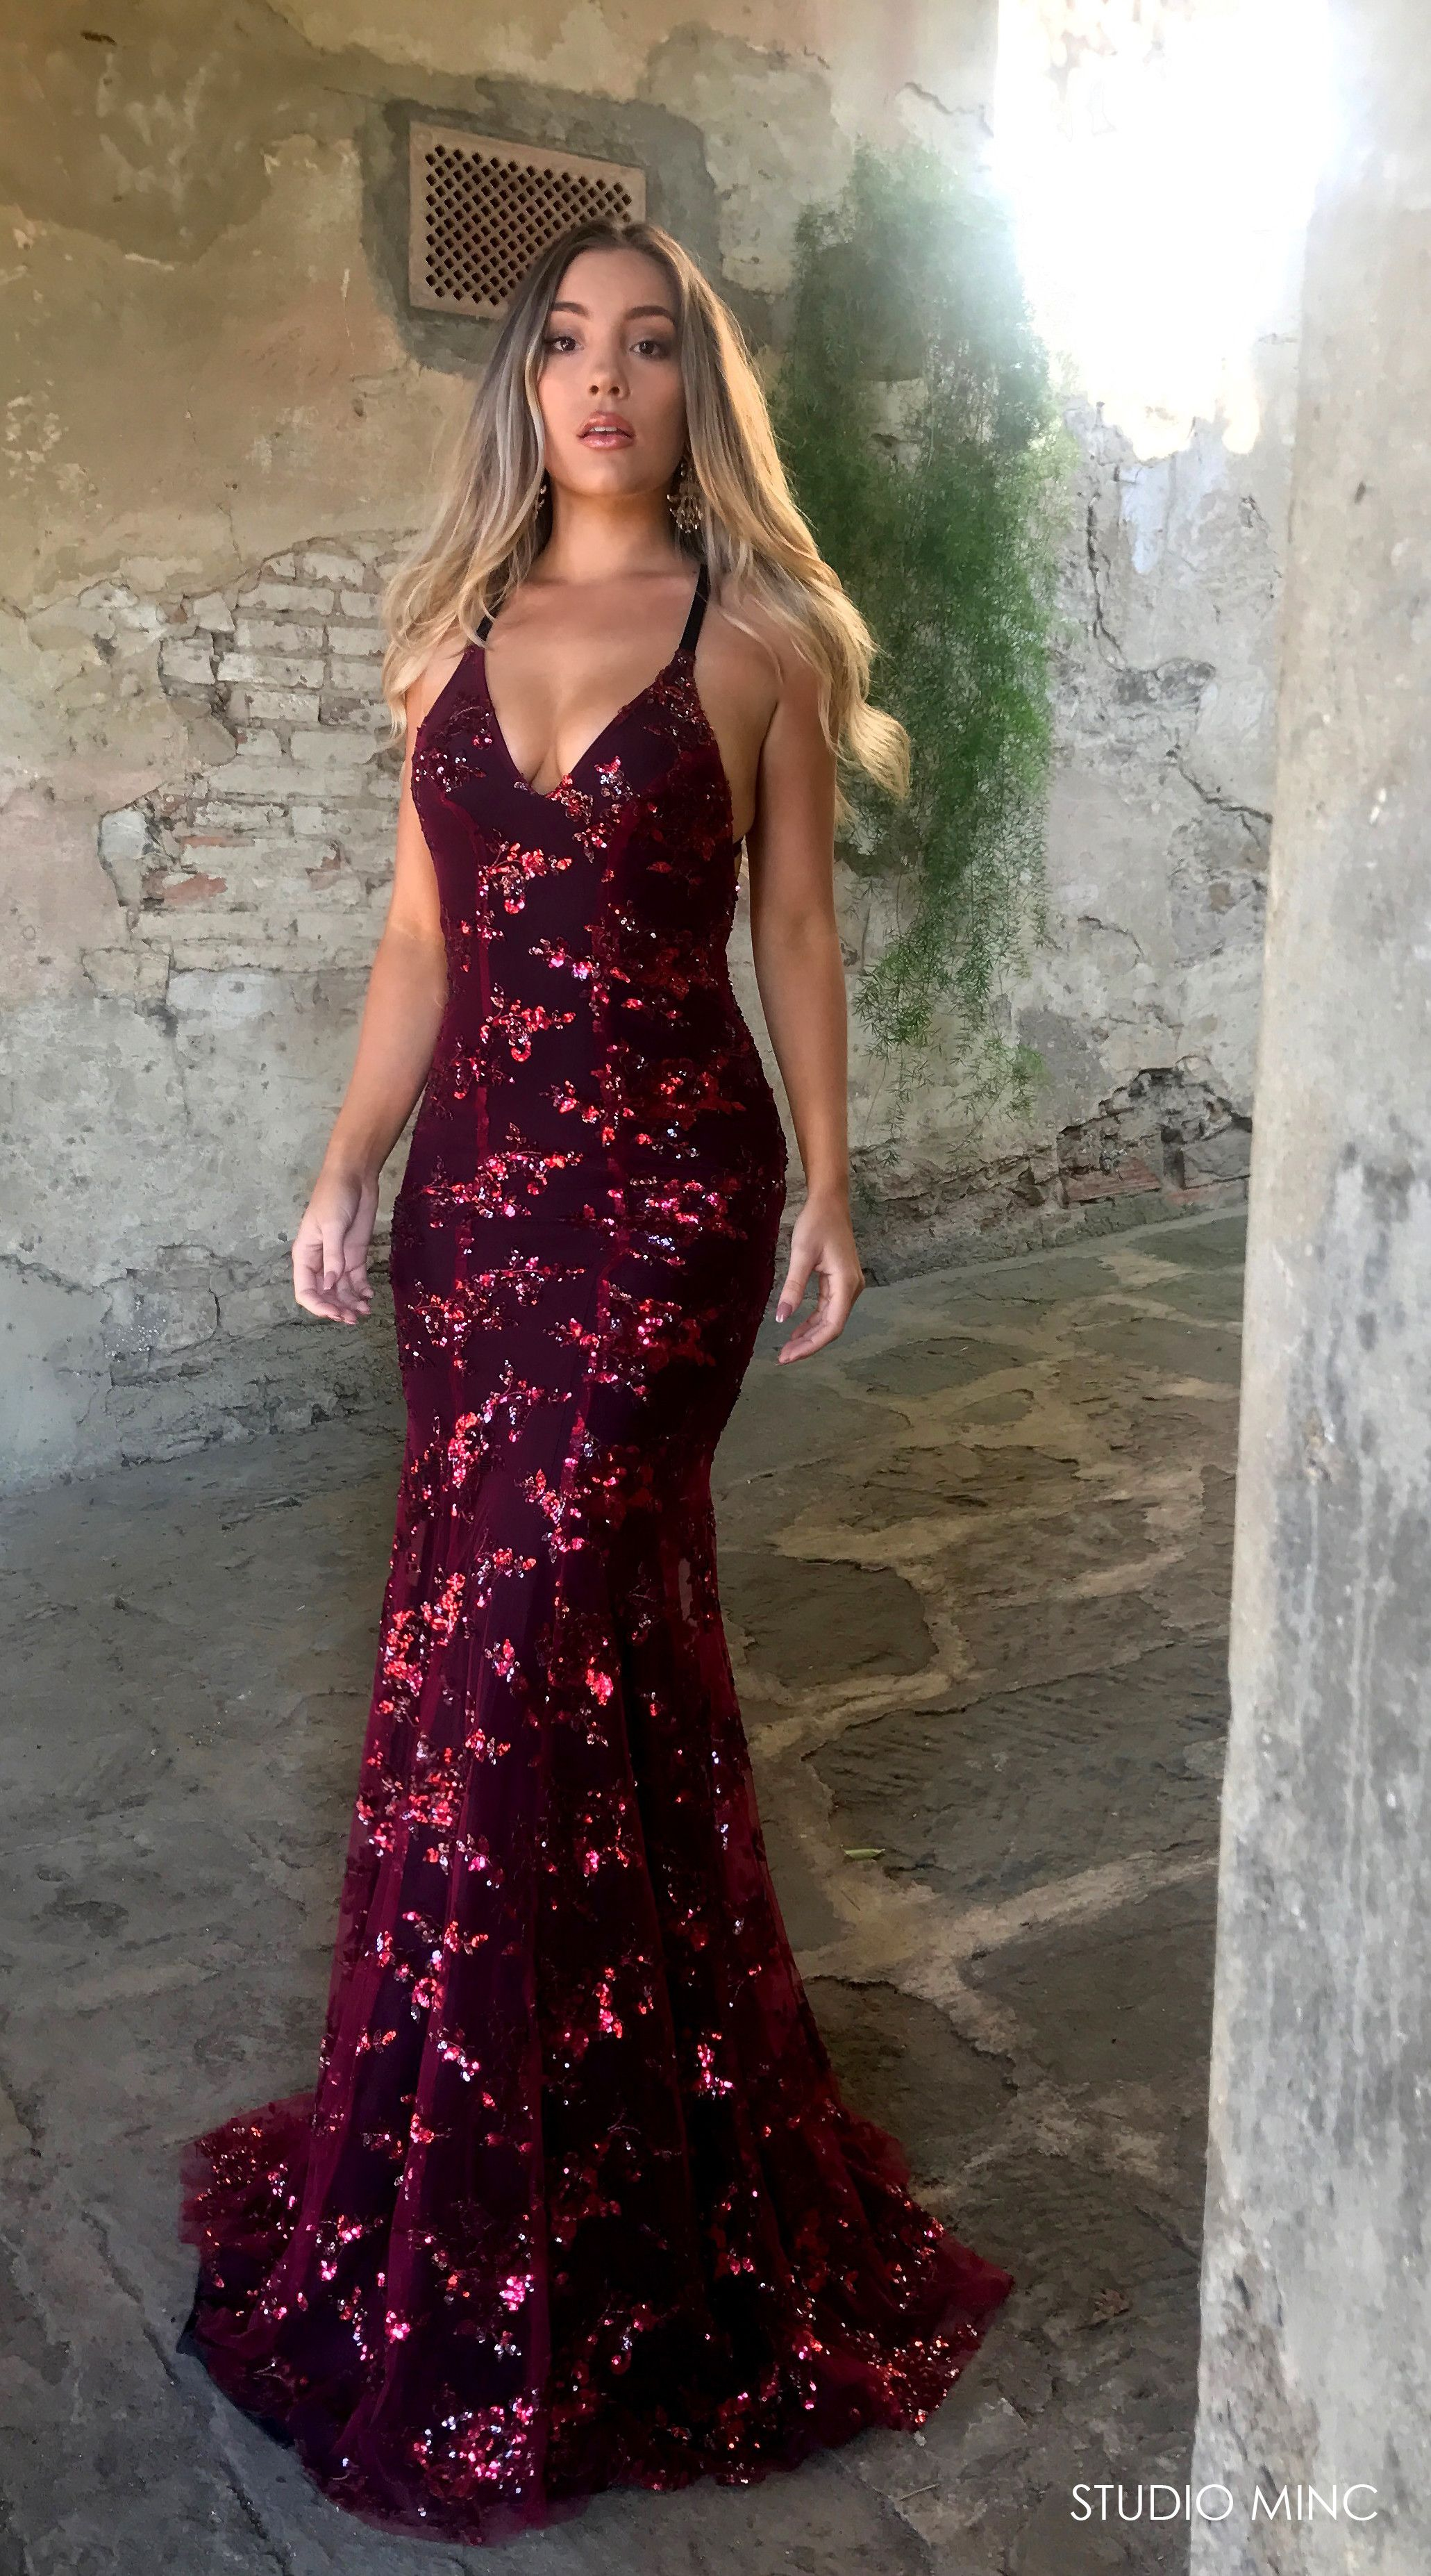 Cherry Cola Distraction Style Formal Gowns Pinterest Haine